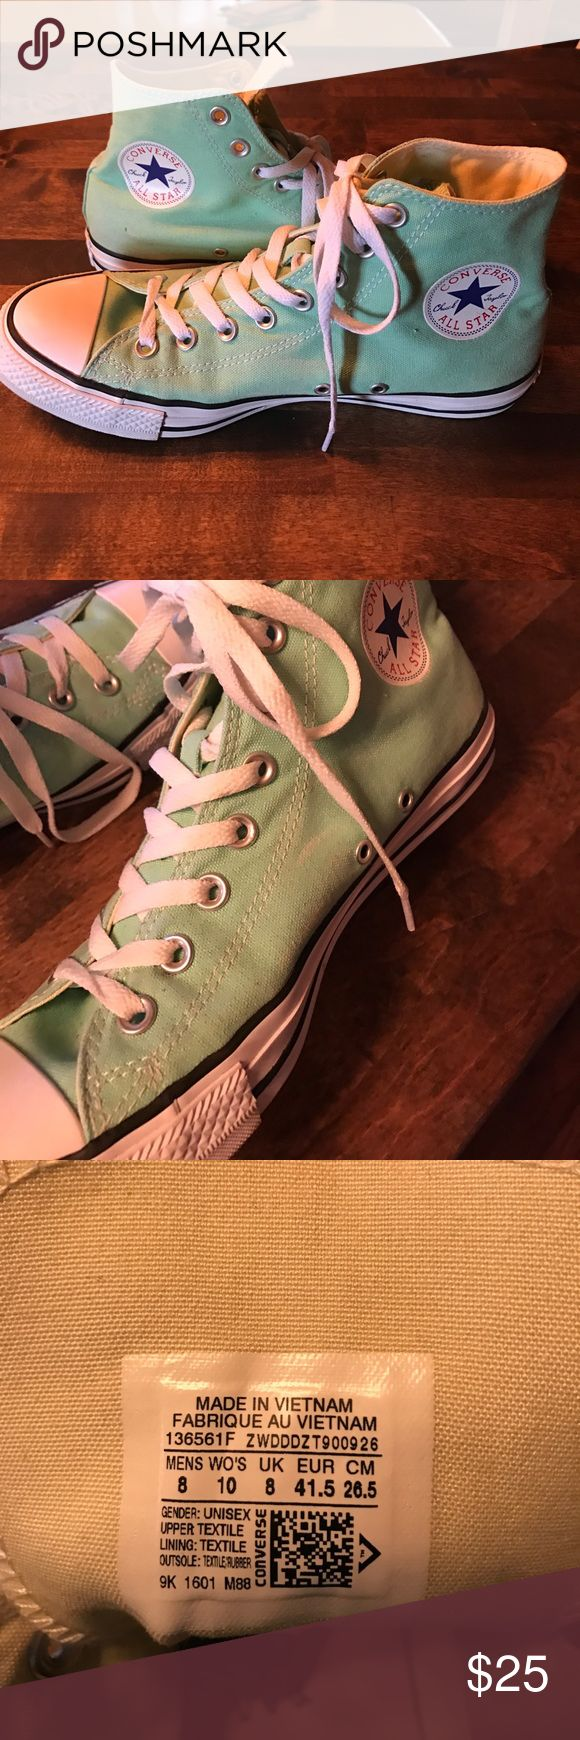 Mint Converse Hightops These have been worn maybe 3 times. Great condition, very clean. Slight fading on the sides (see pictures), not noticeable!! Converse Shoes Sneakers